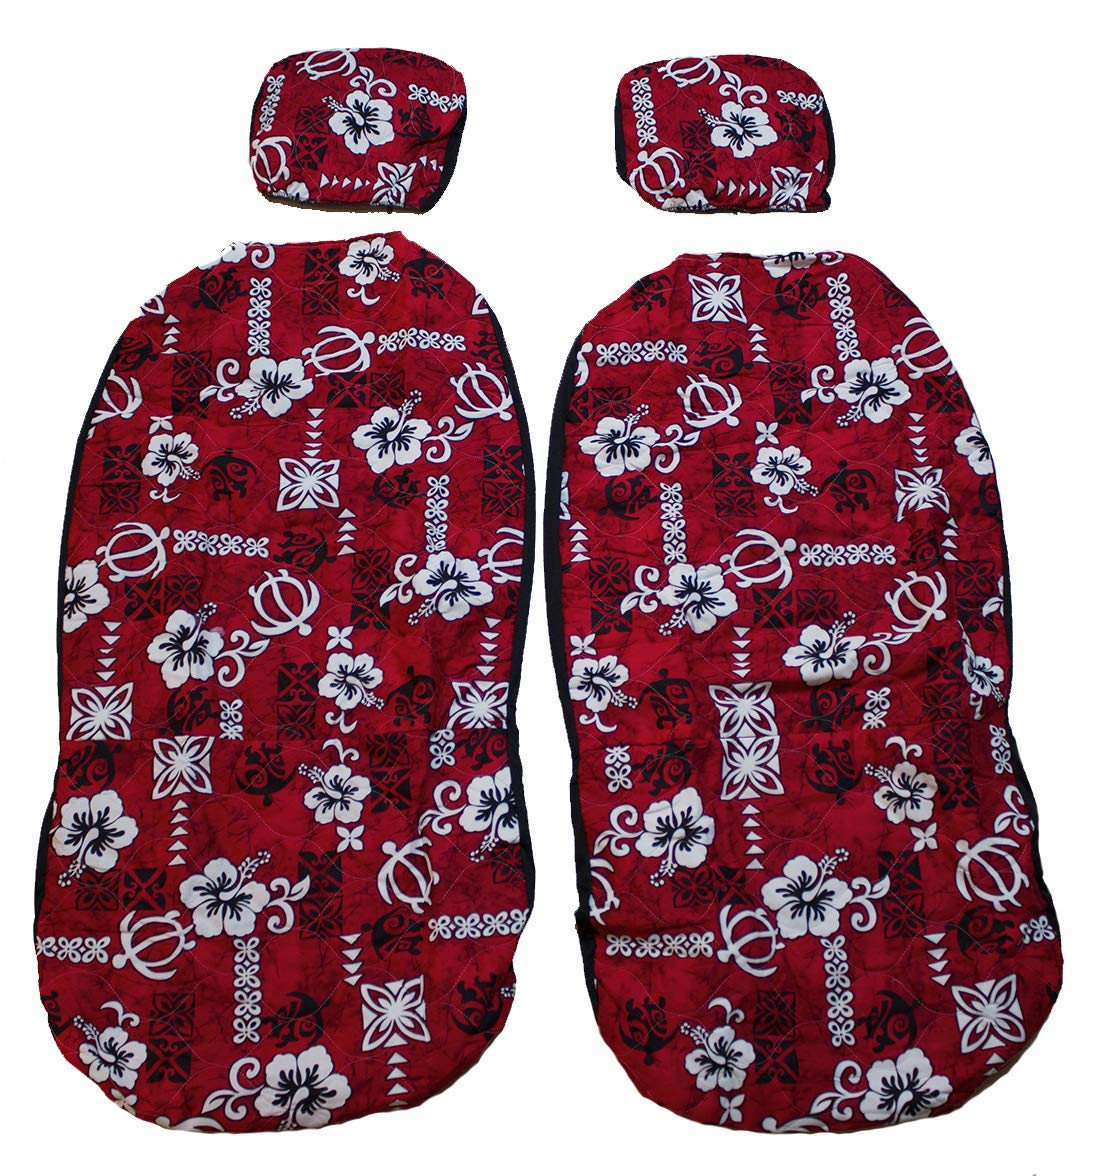 Hawaiian Car Seat Covers >> Hawaiian Car Seat Cover With Separated Headrest Green Surfboard Set Of 2 Front Bucket Seat Covers Made In Hawaii Red